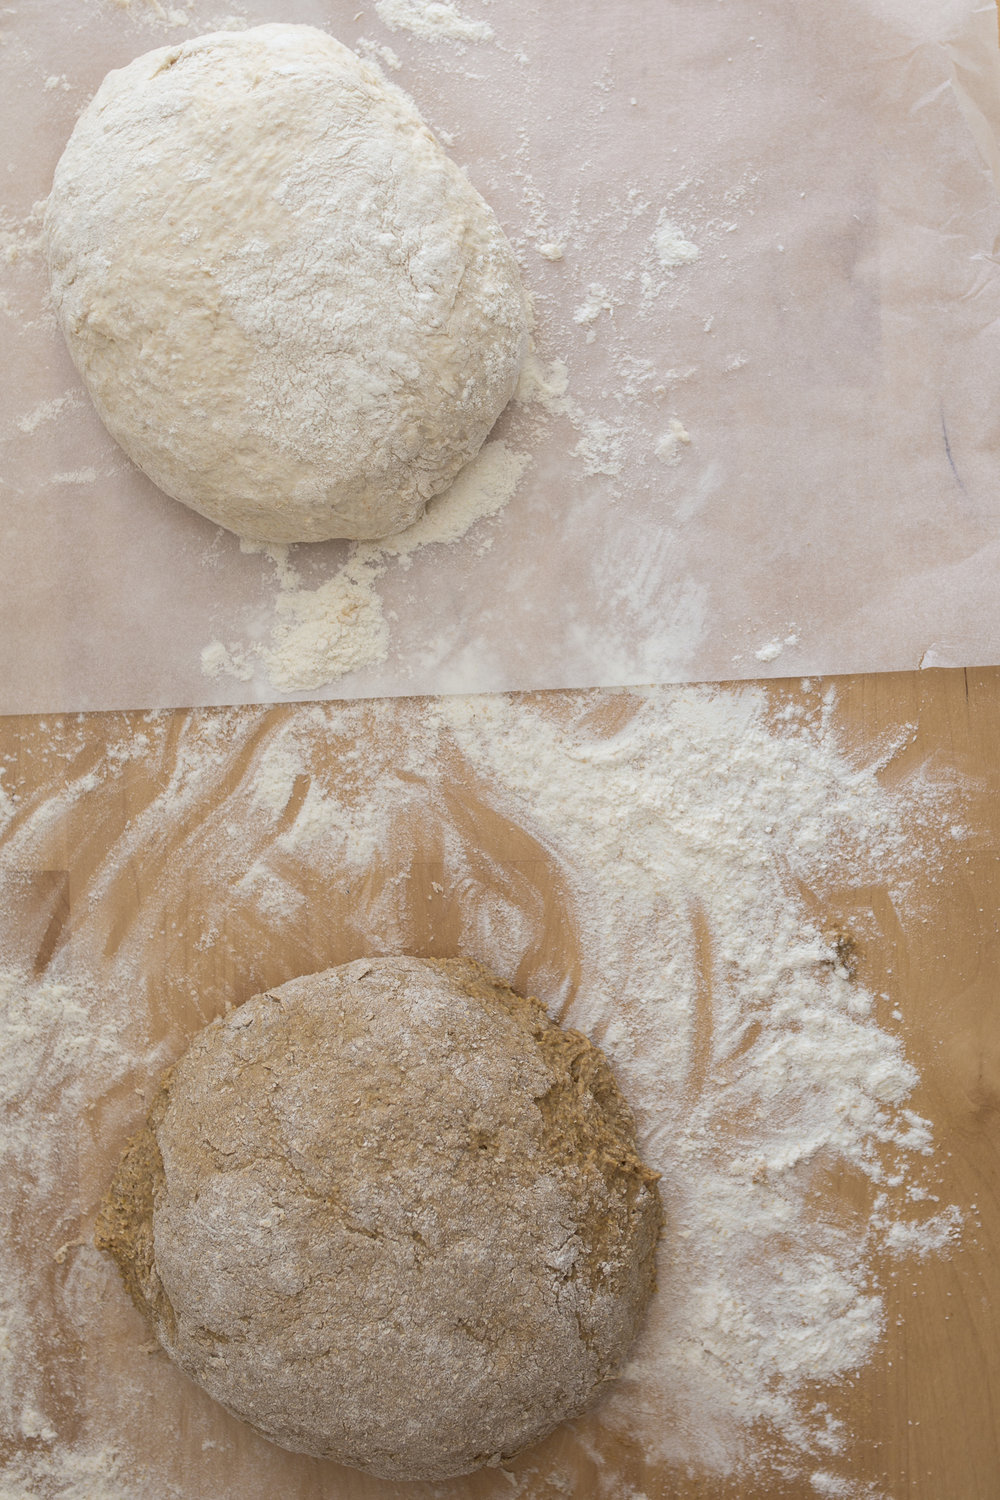 Breads proving. Top is Jim Lahey's no-knead bread and botton is the Emily Dickinson recipe.